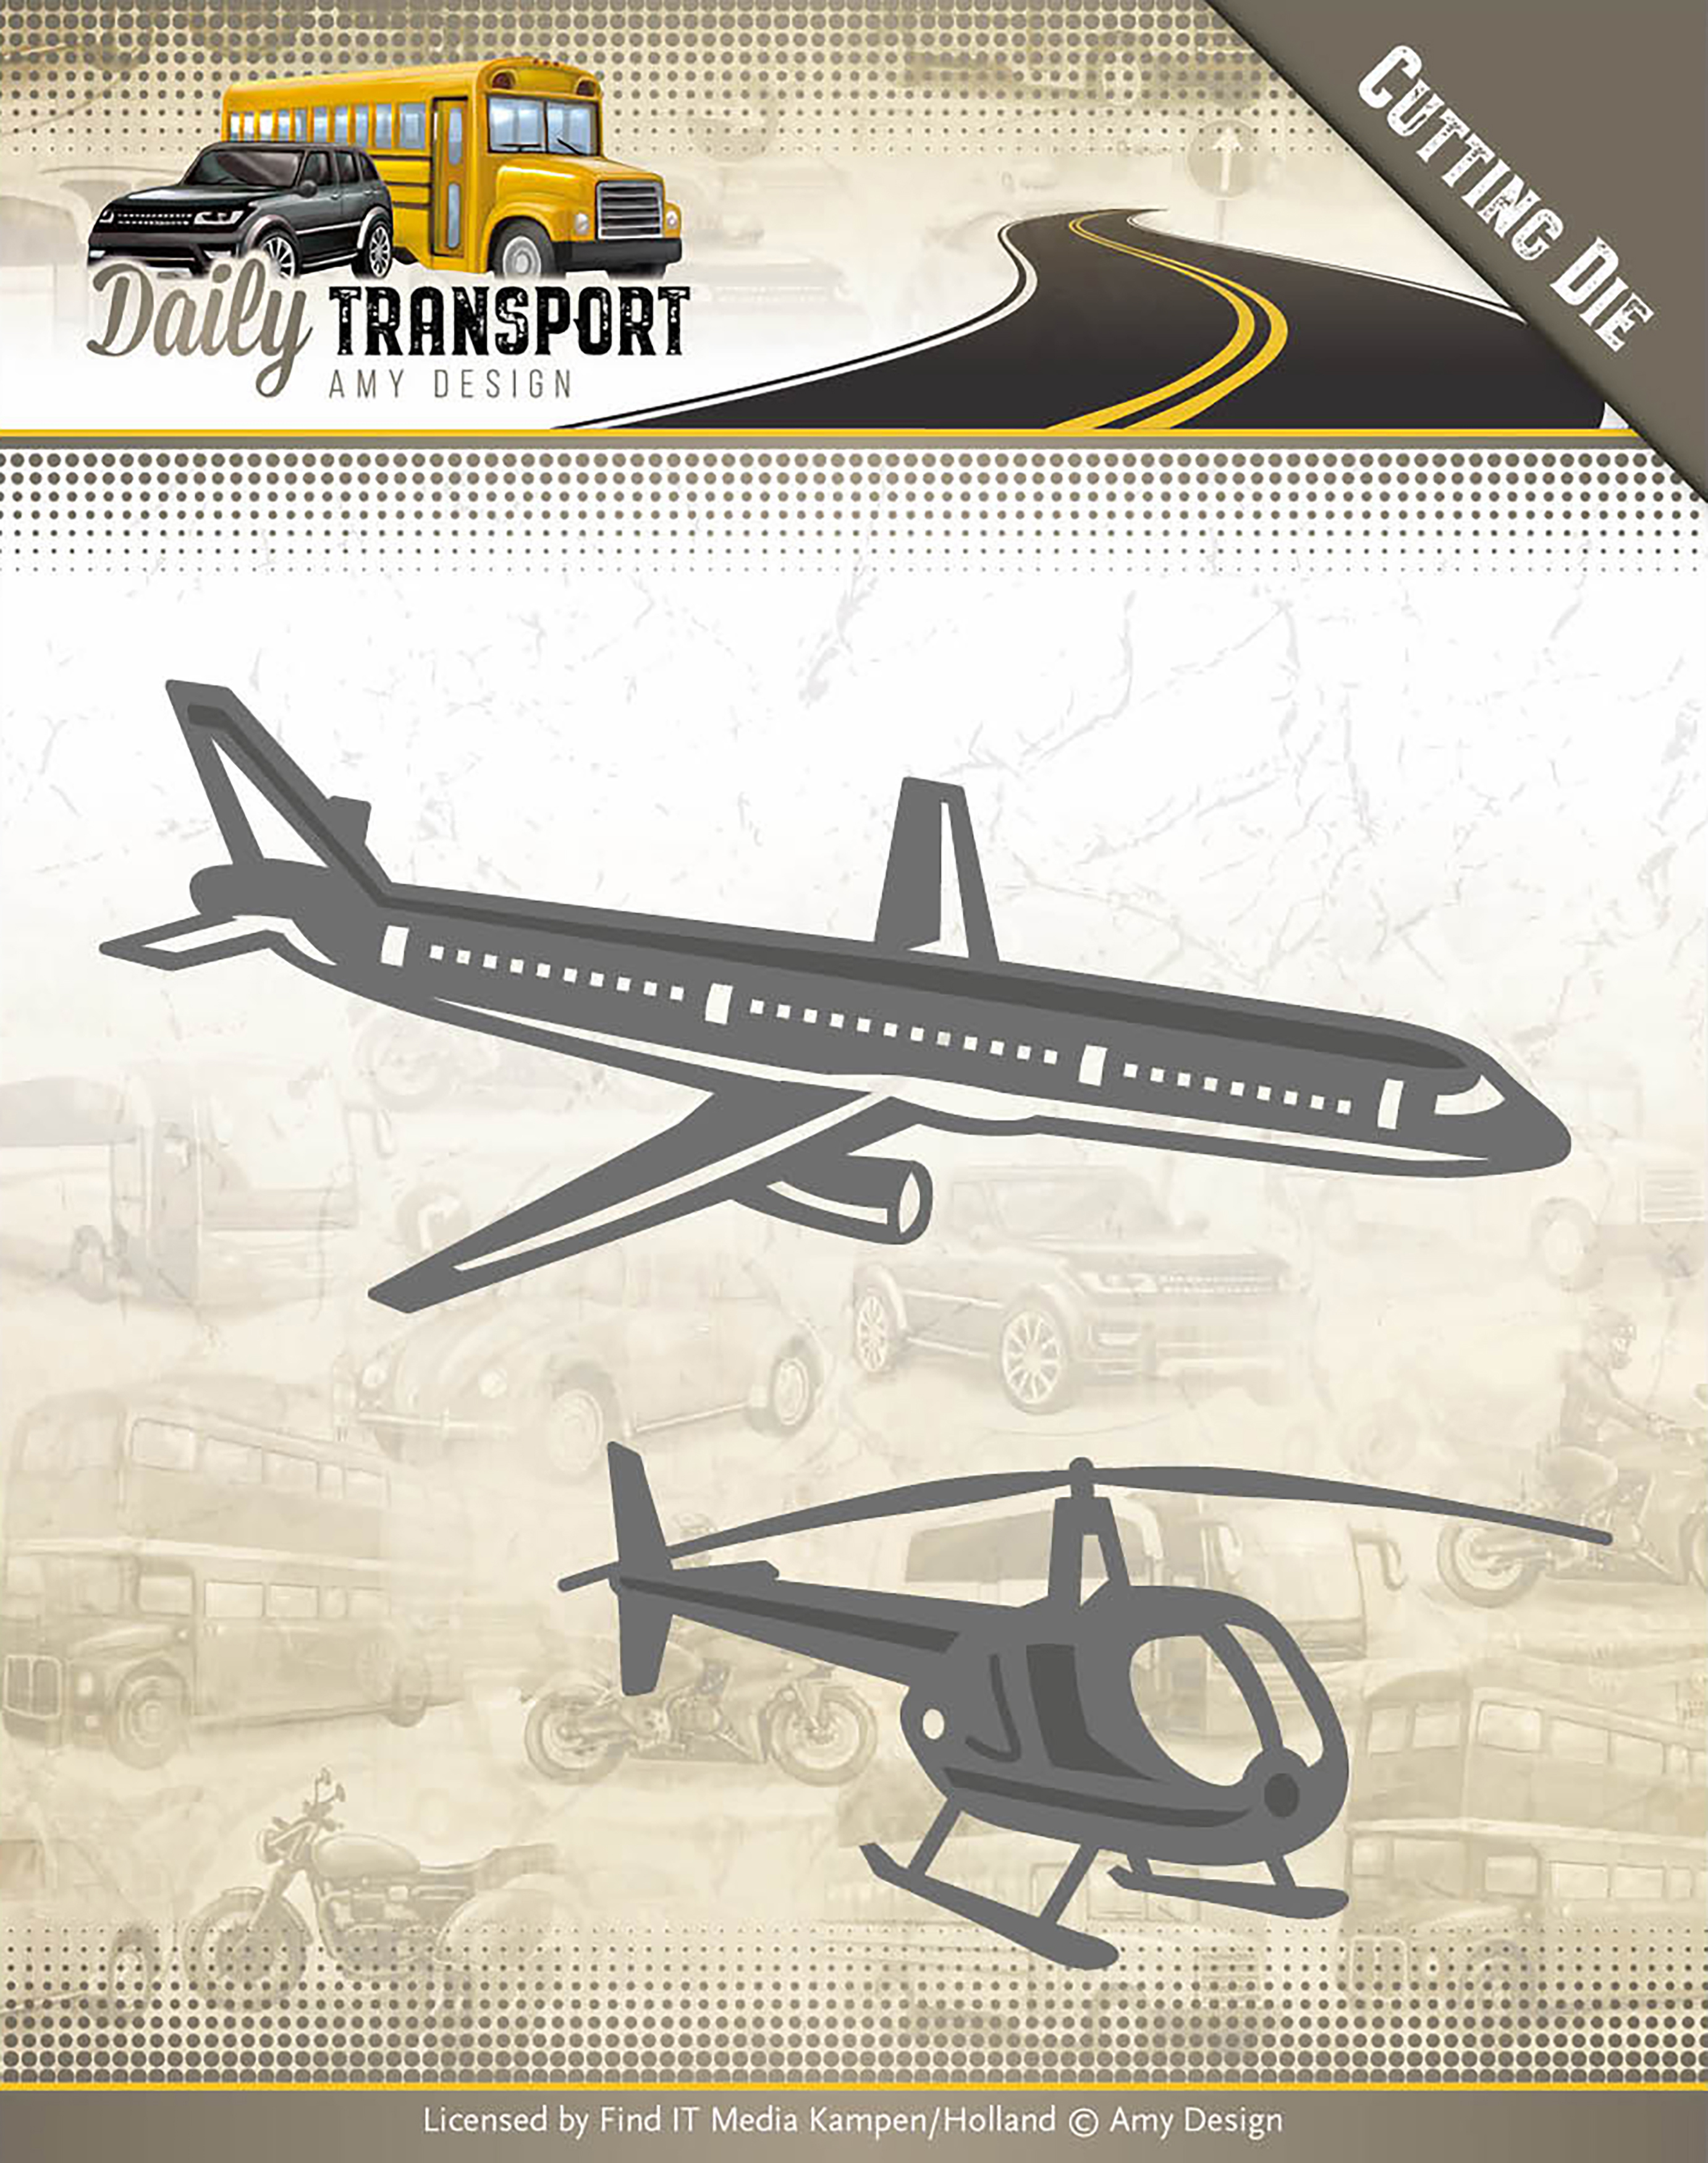 Through The Air - Find It Trading Amy Design Daily Transport Die